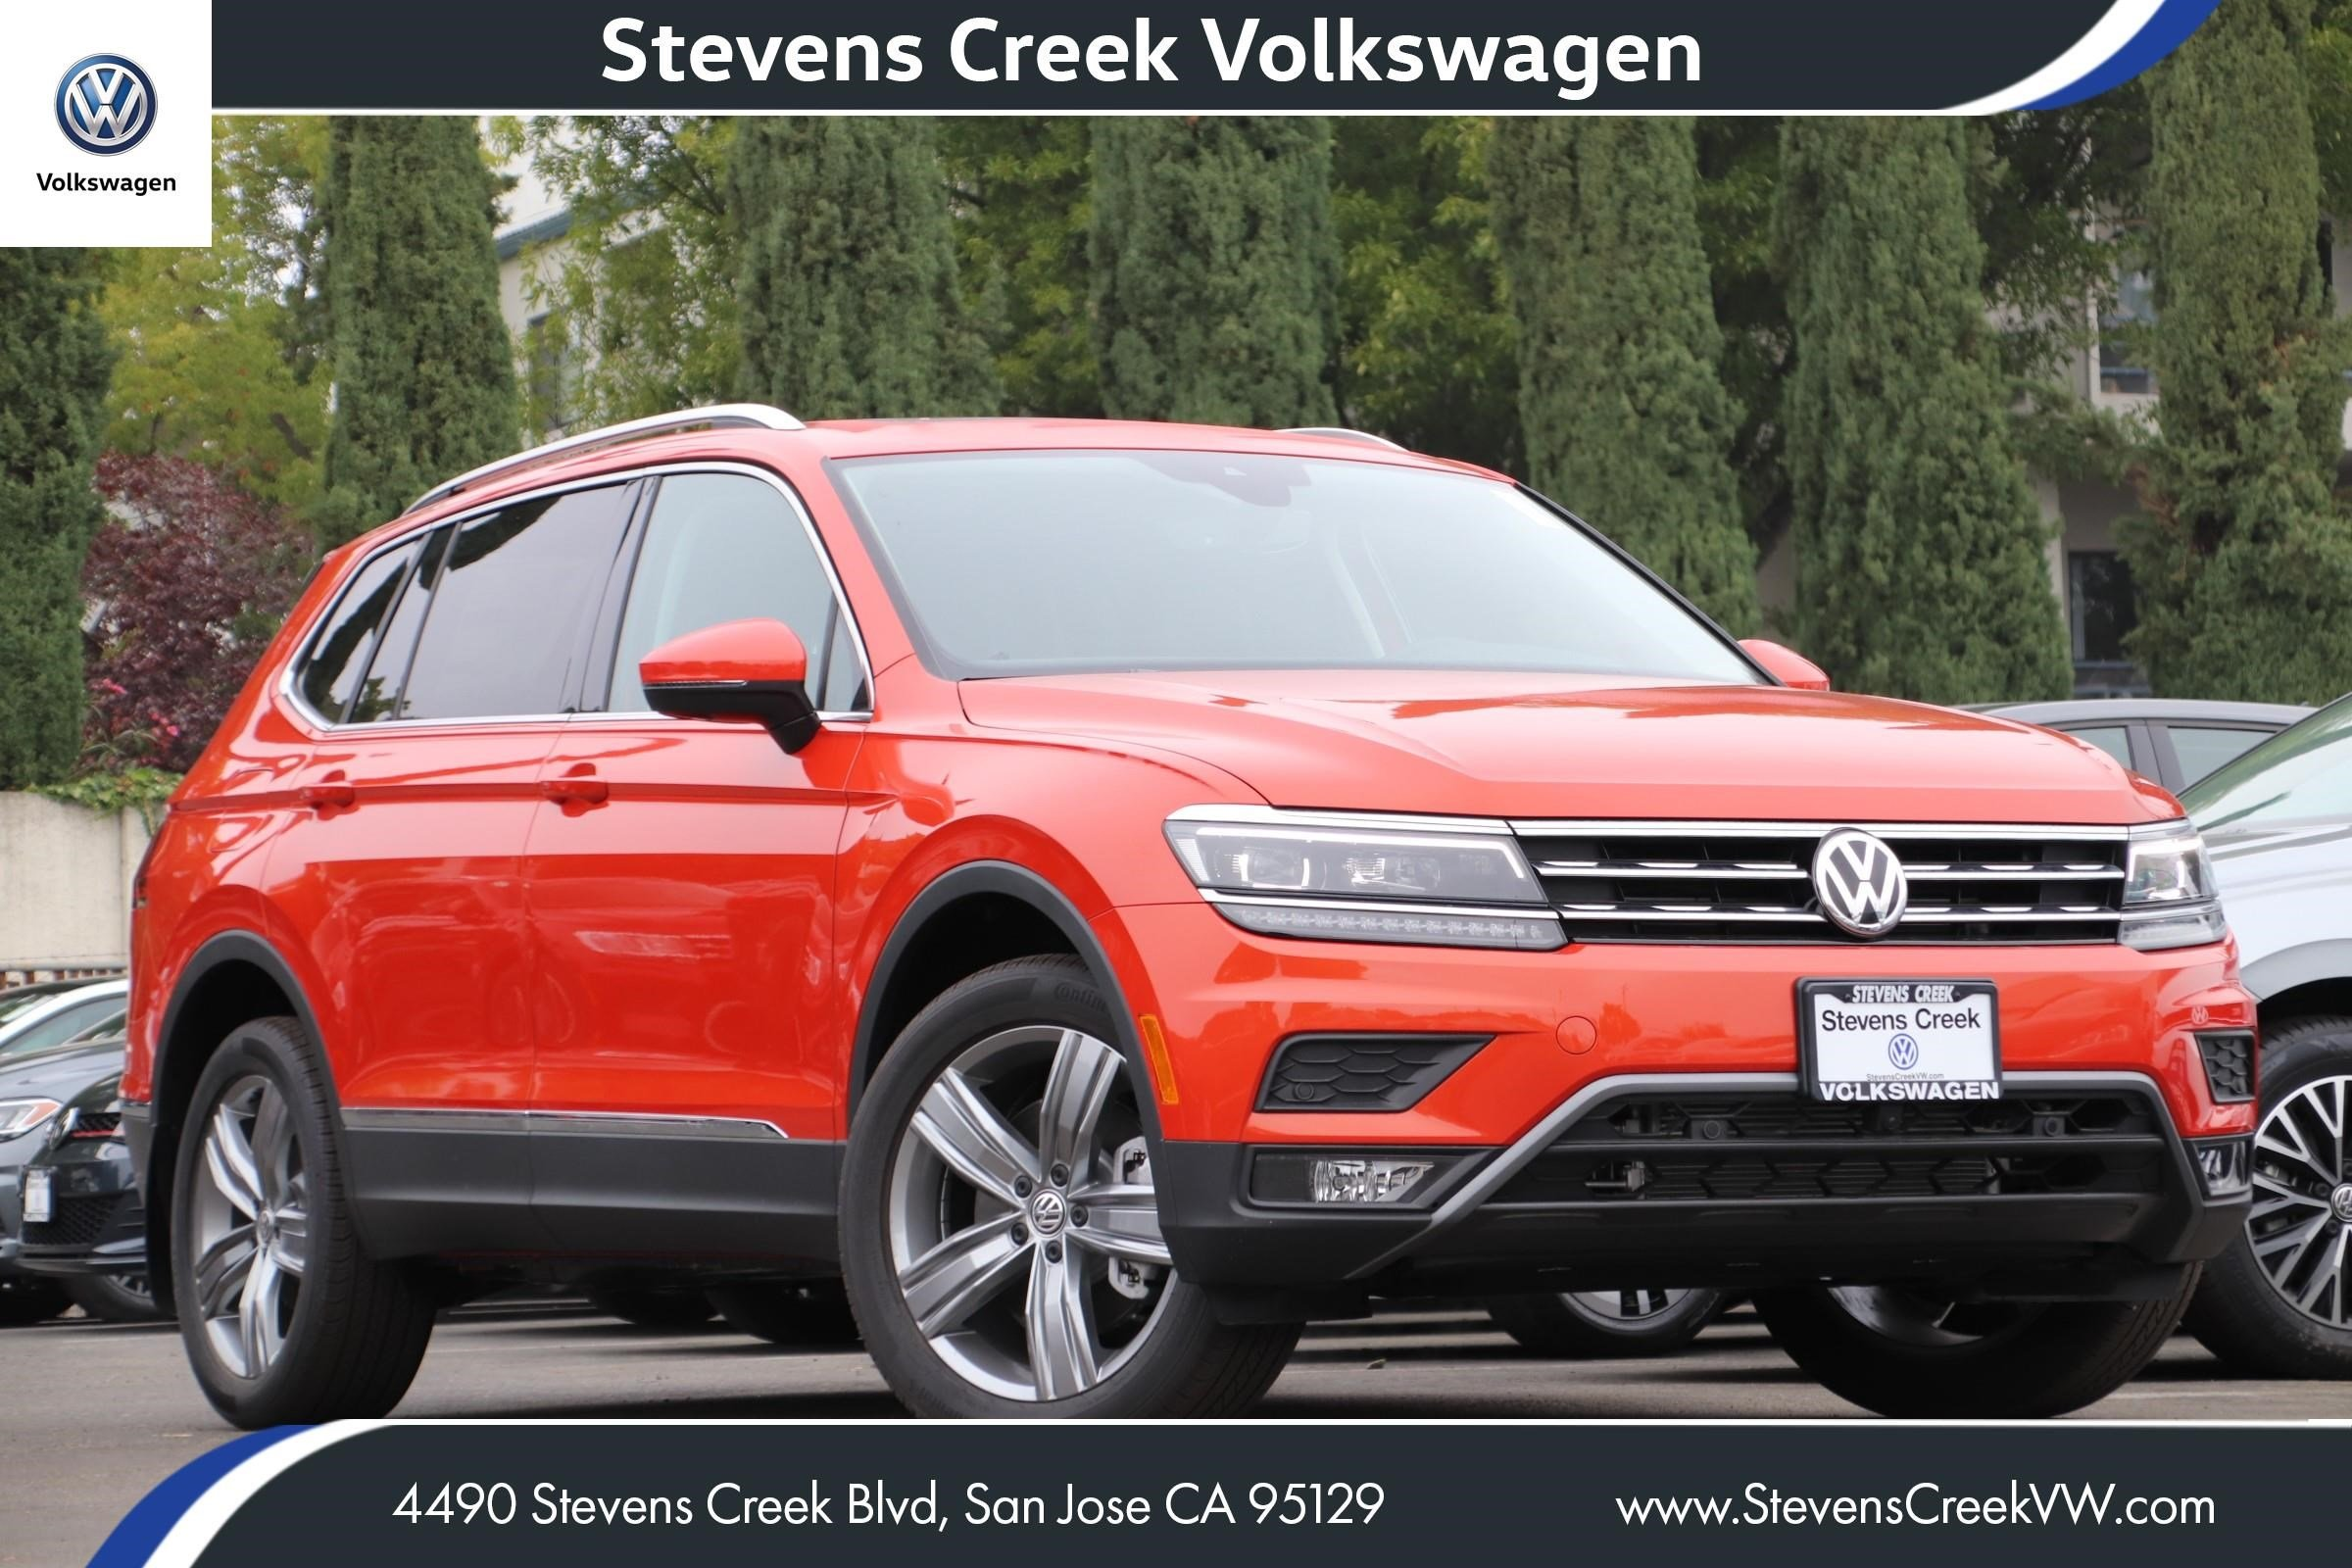 New 2019 Volkswagen Tiguan SEL Premium With Navigation & AWD VIN 3VV4B7AXXKM140784 MSRP $40,000